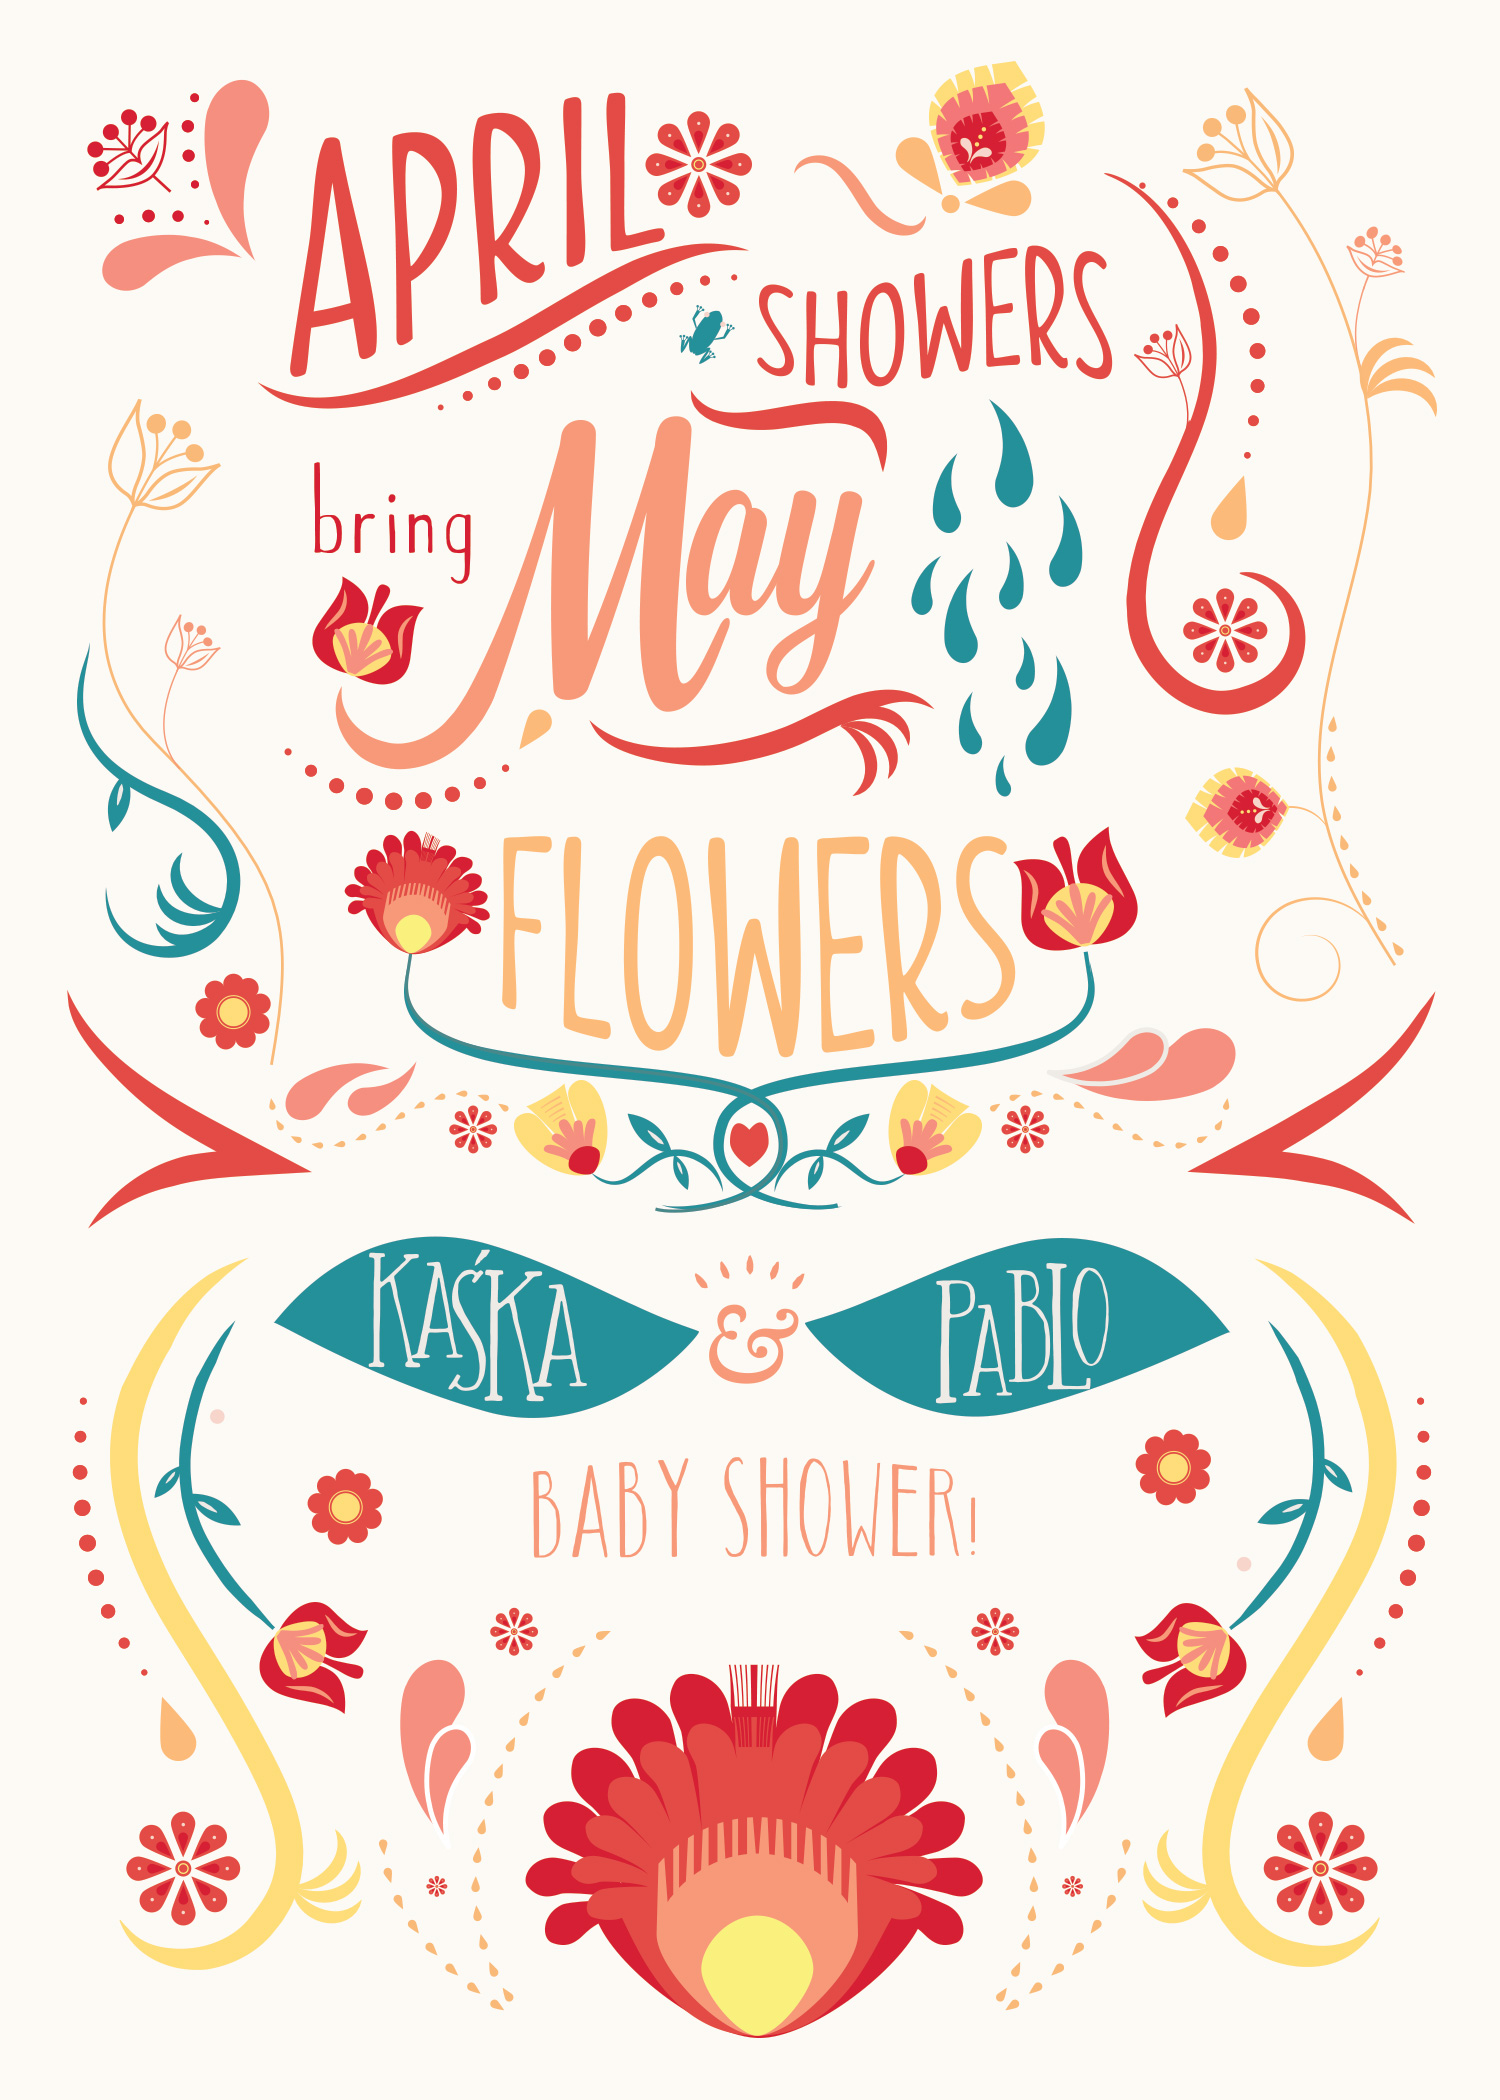 April showers bring may flowers liannierios april showers bring may flowers mightylinksfo